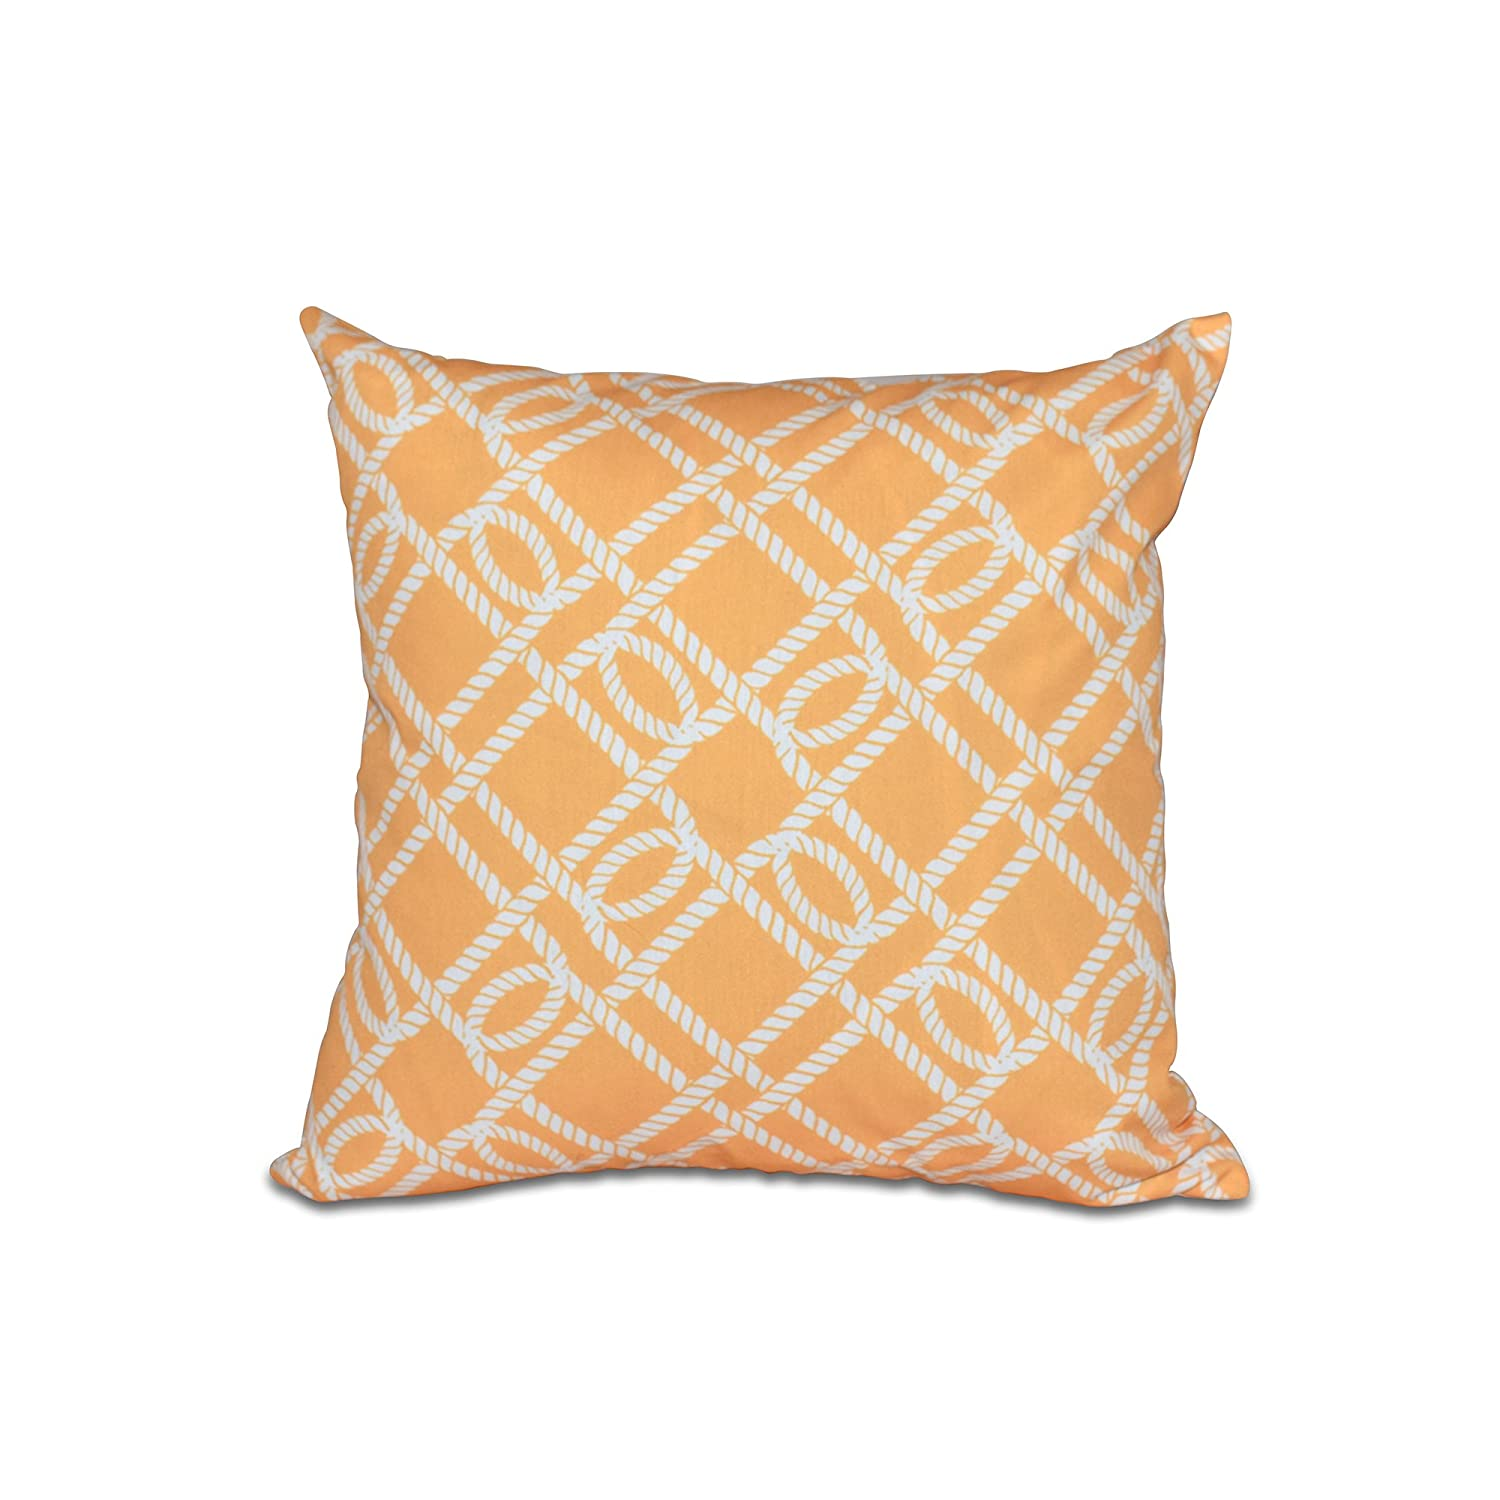 E by design O5PGN409YE8-18 18 x 18 Know The Ropes, Geometric Pillow Yellow